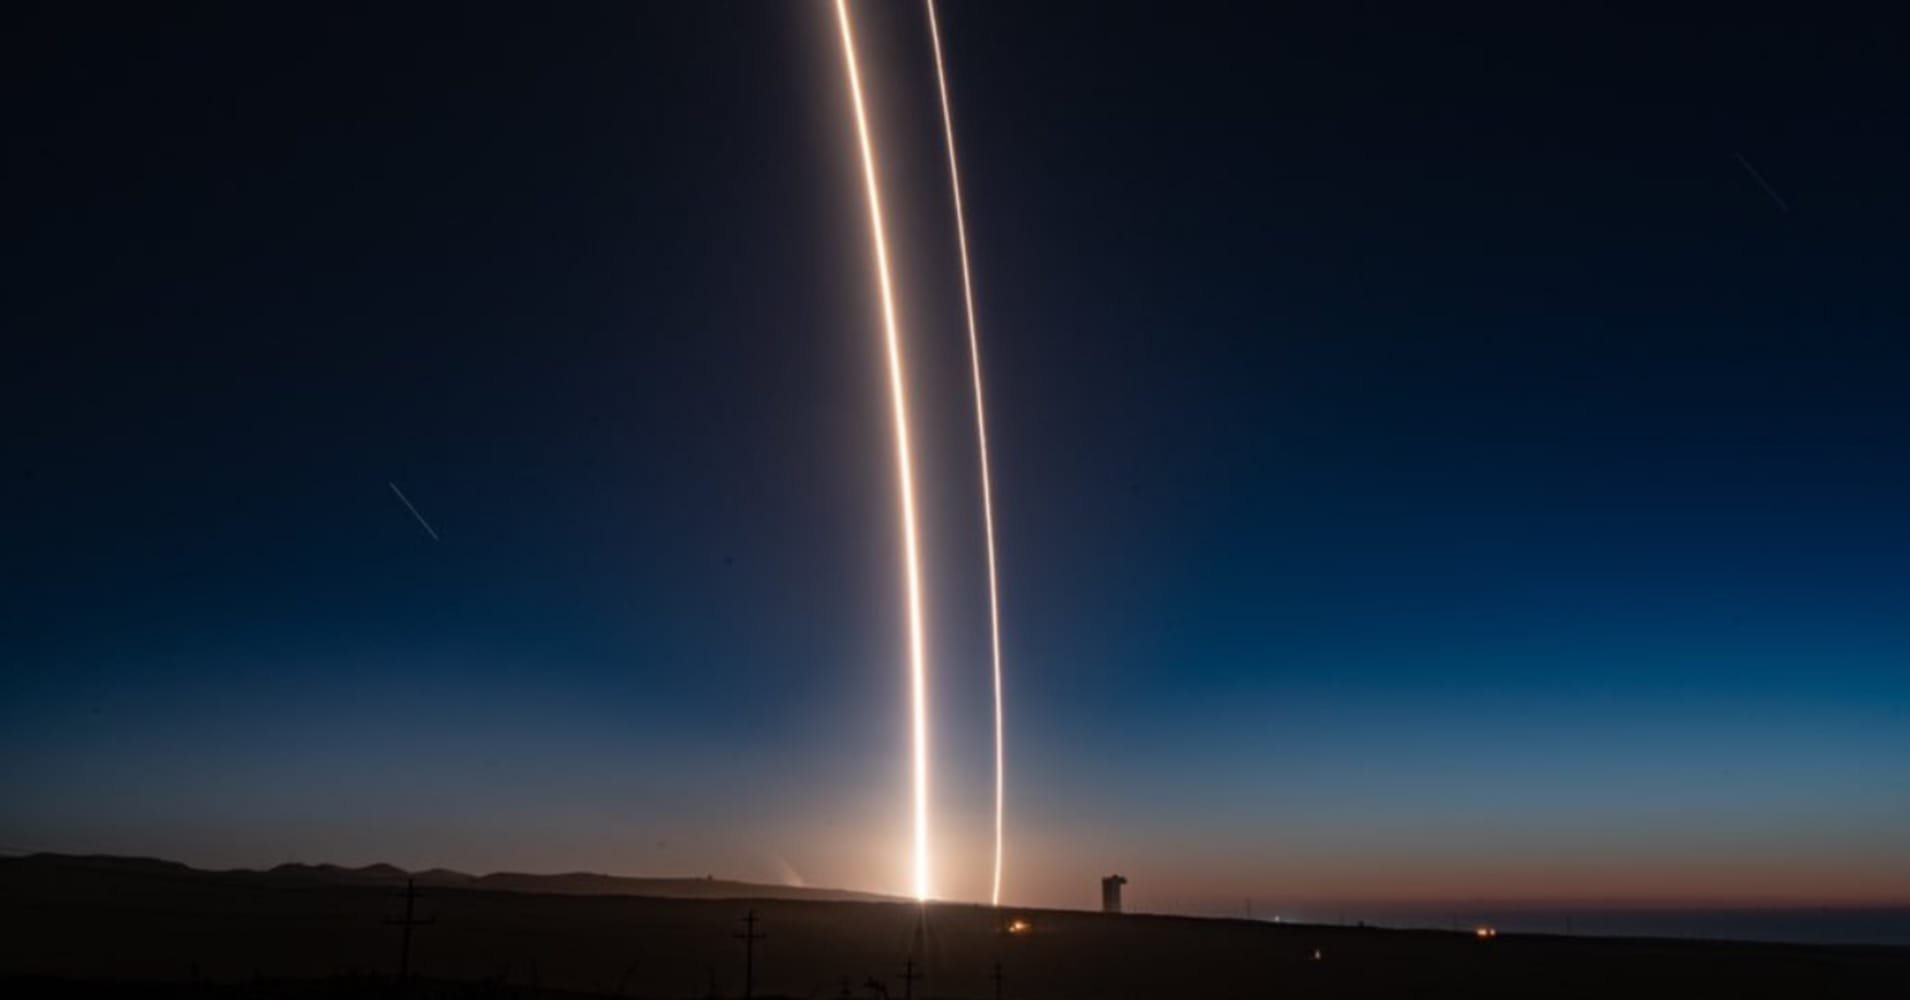 SpaceX launches the SAOCOM 1A satellite for Argentina's Space Agency on October 7 from Vandenberg Air Force Base in California.